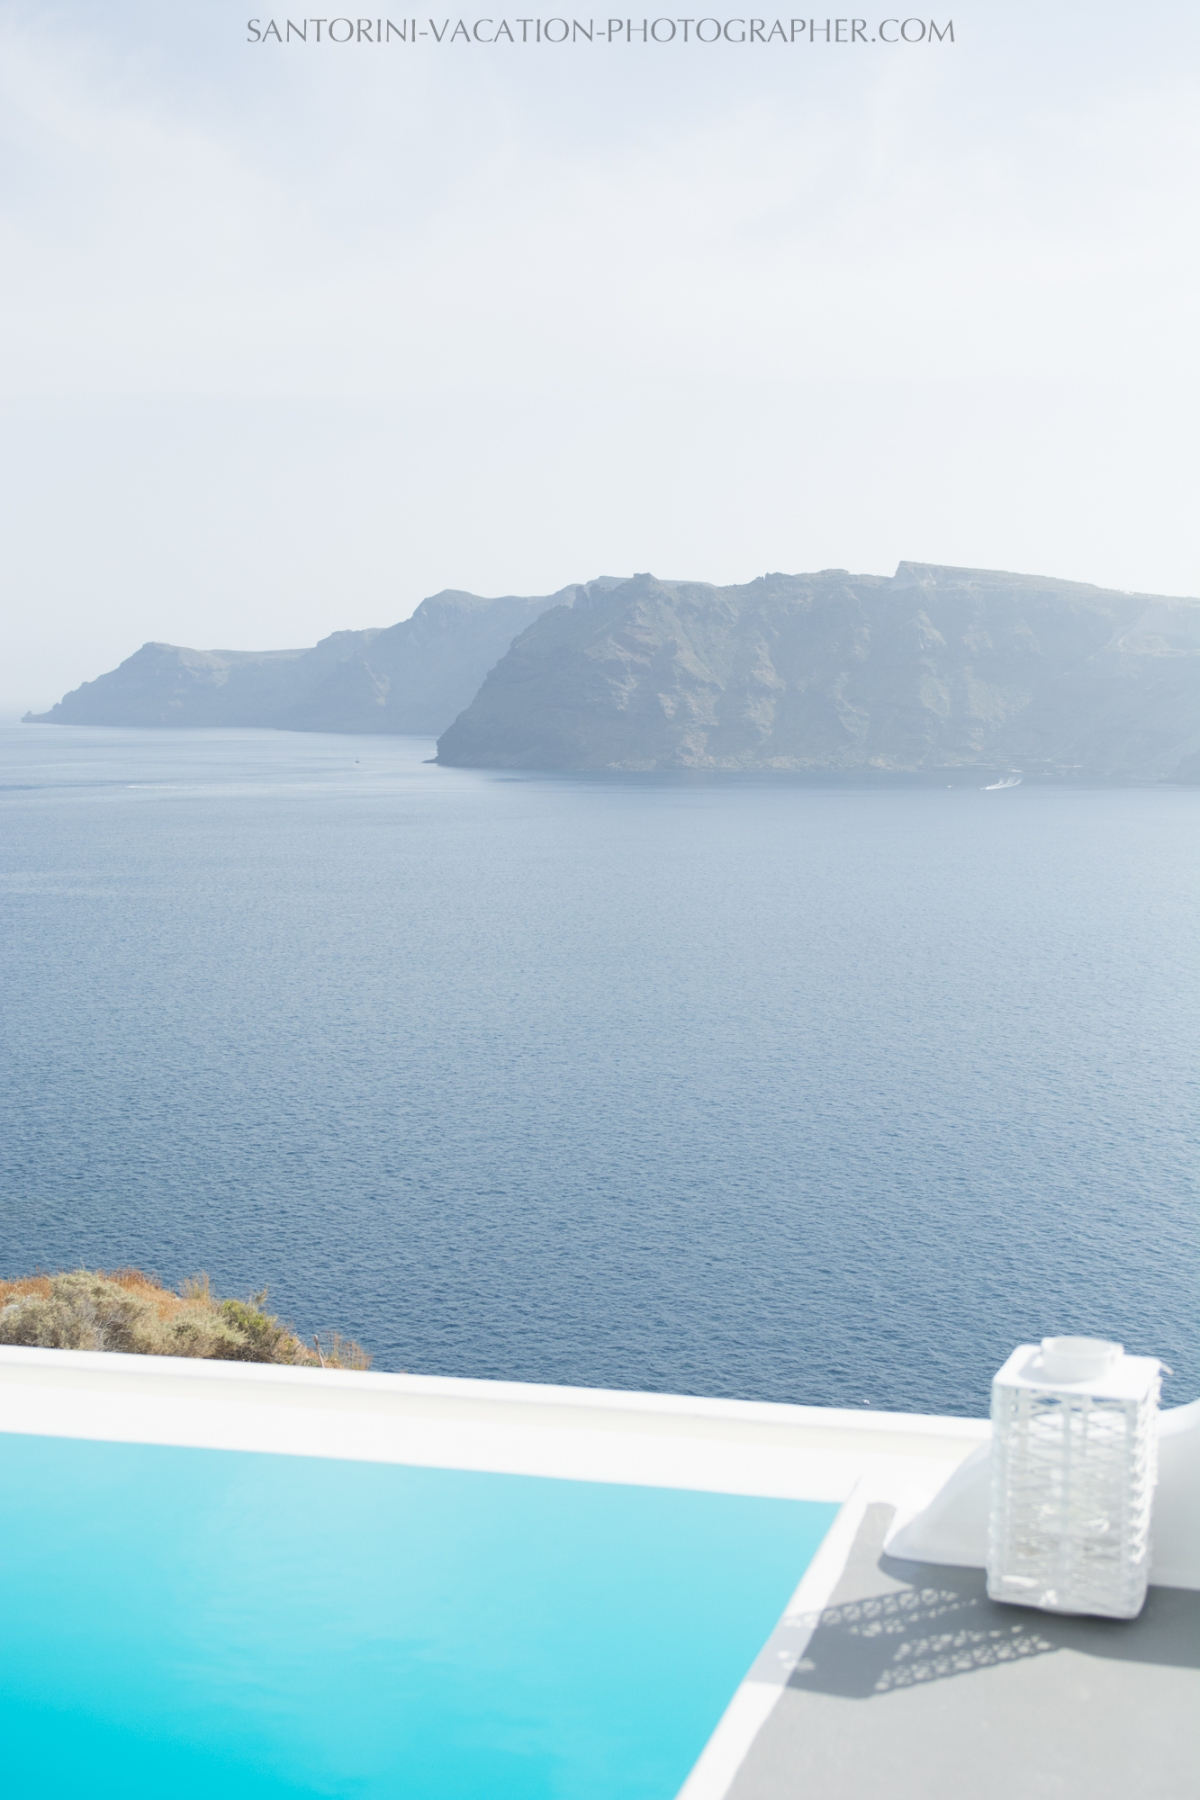 Oia-santorini-village-white-houses-castle-003